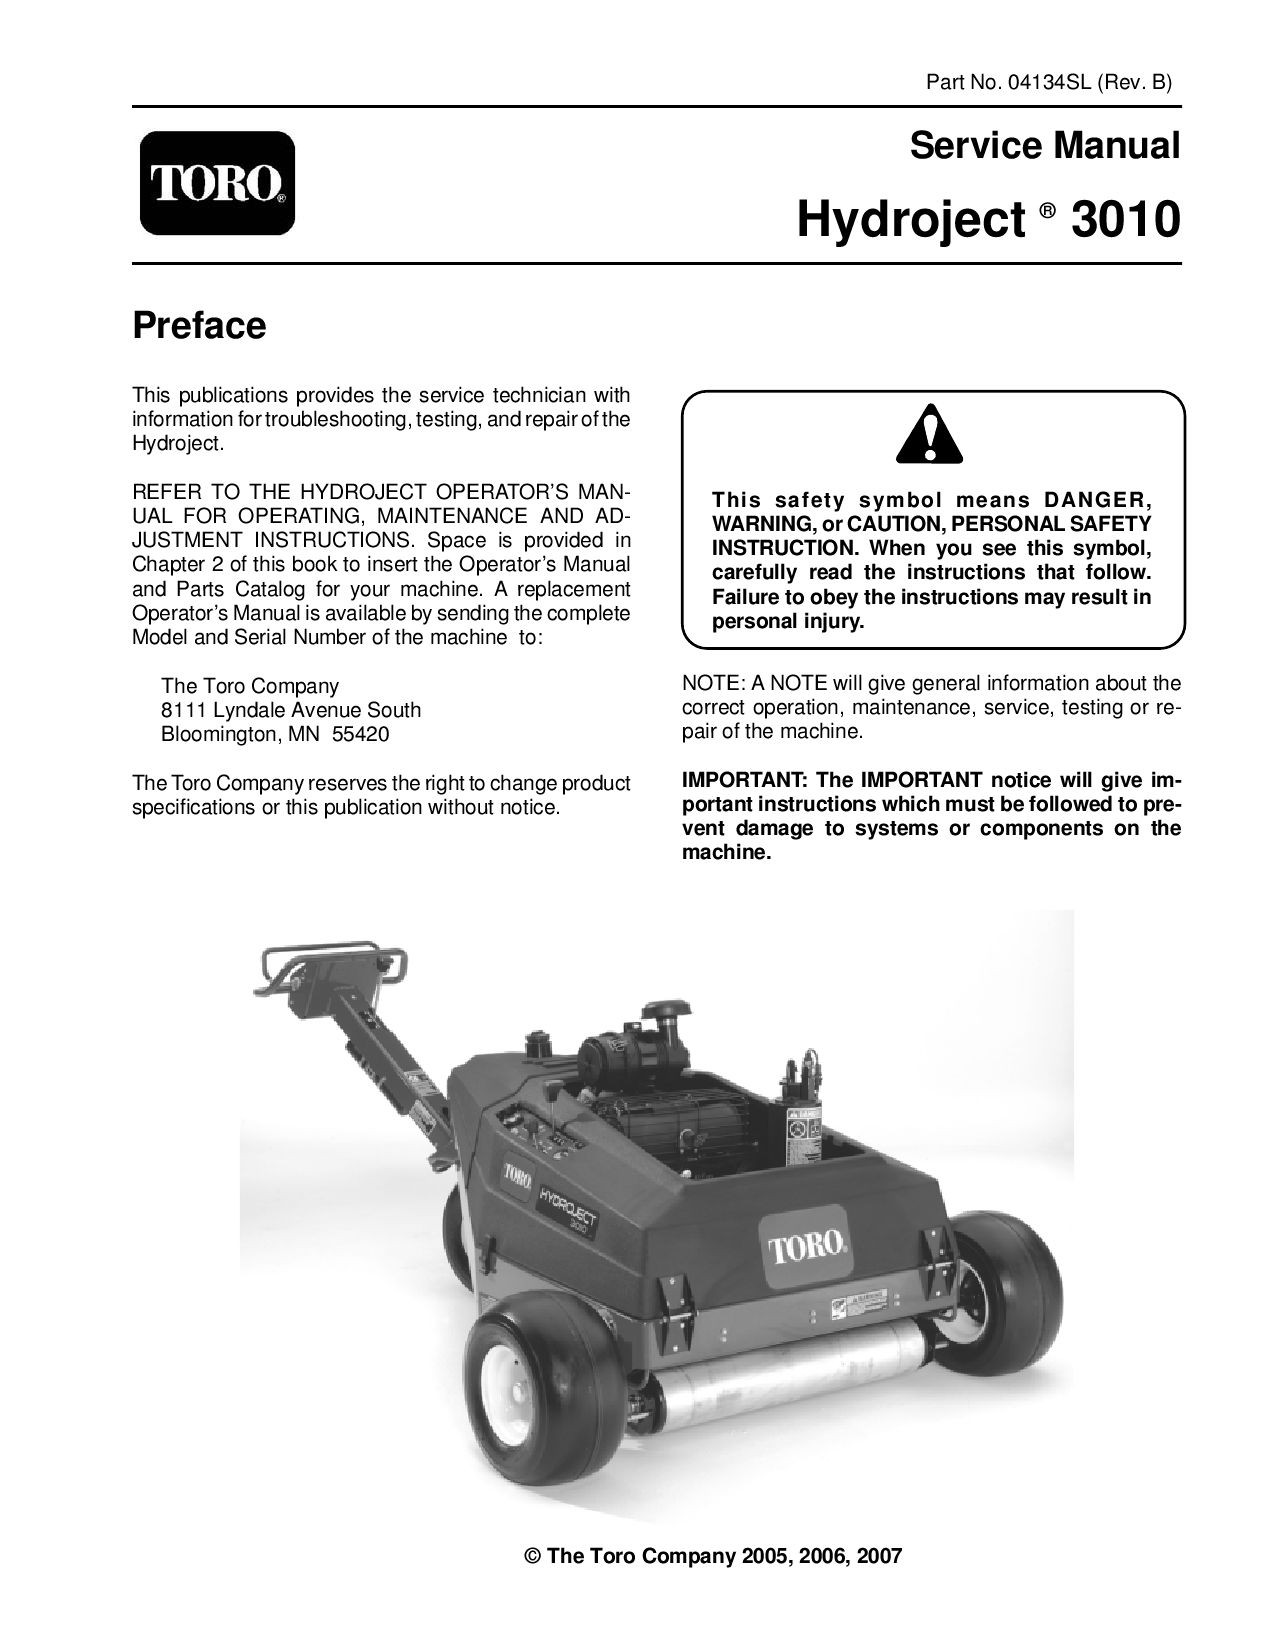 How to Troubleshoot orbit Pump Relay Switch Inline Irrigation Pump System Sl Pdf Hydroject 3010 Rev B Aug 2007 by Negimachi Of How to Troubleshoot orbit Pump Relay Switch Inline Irrigation Pump System